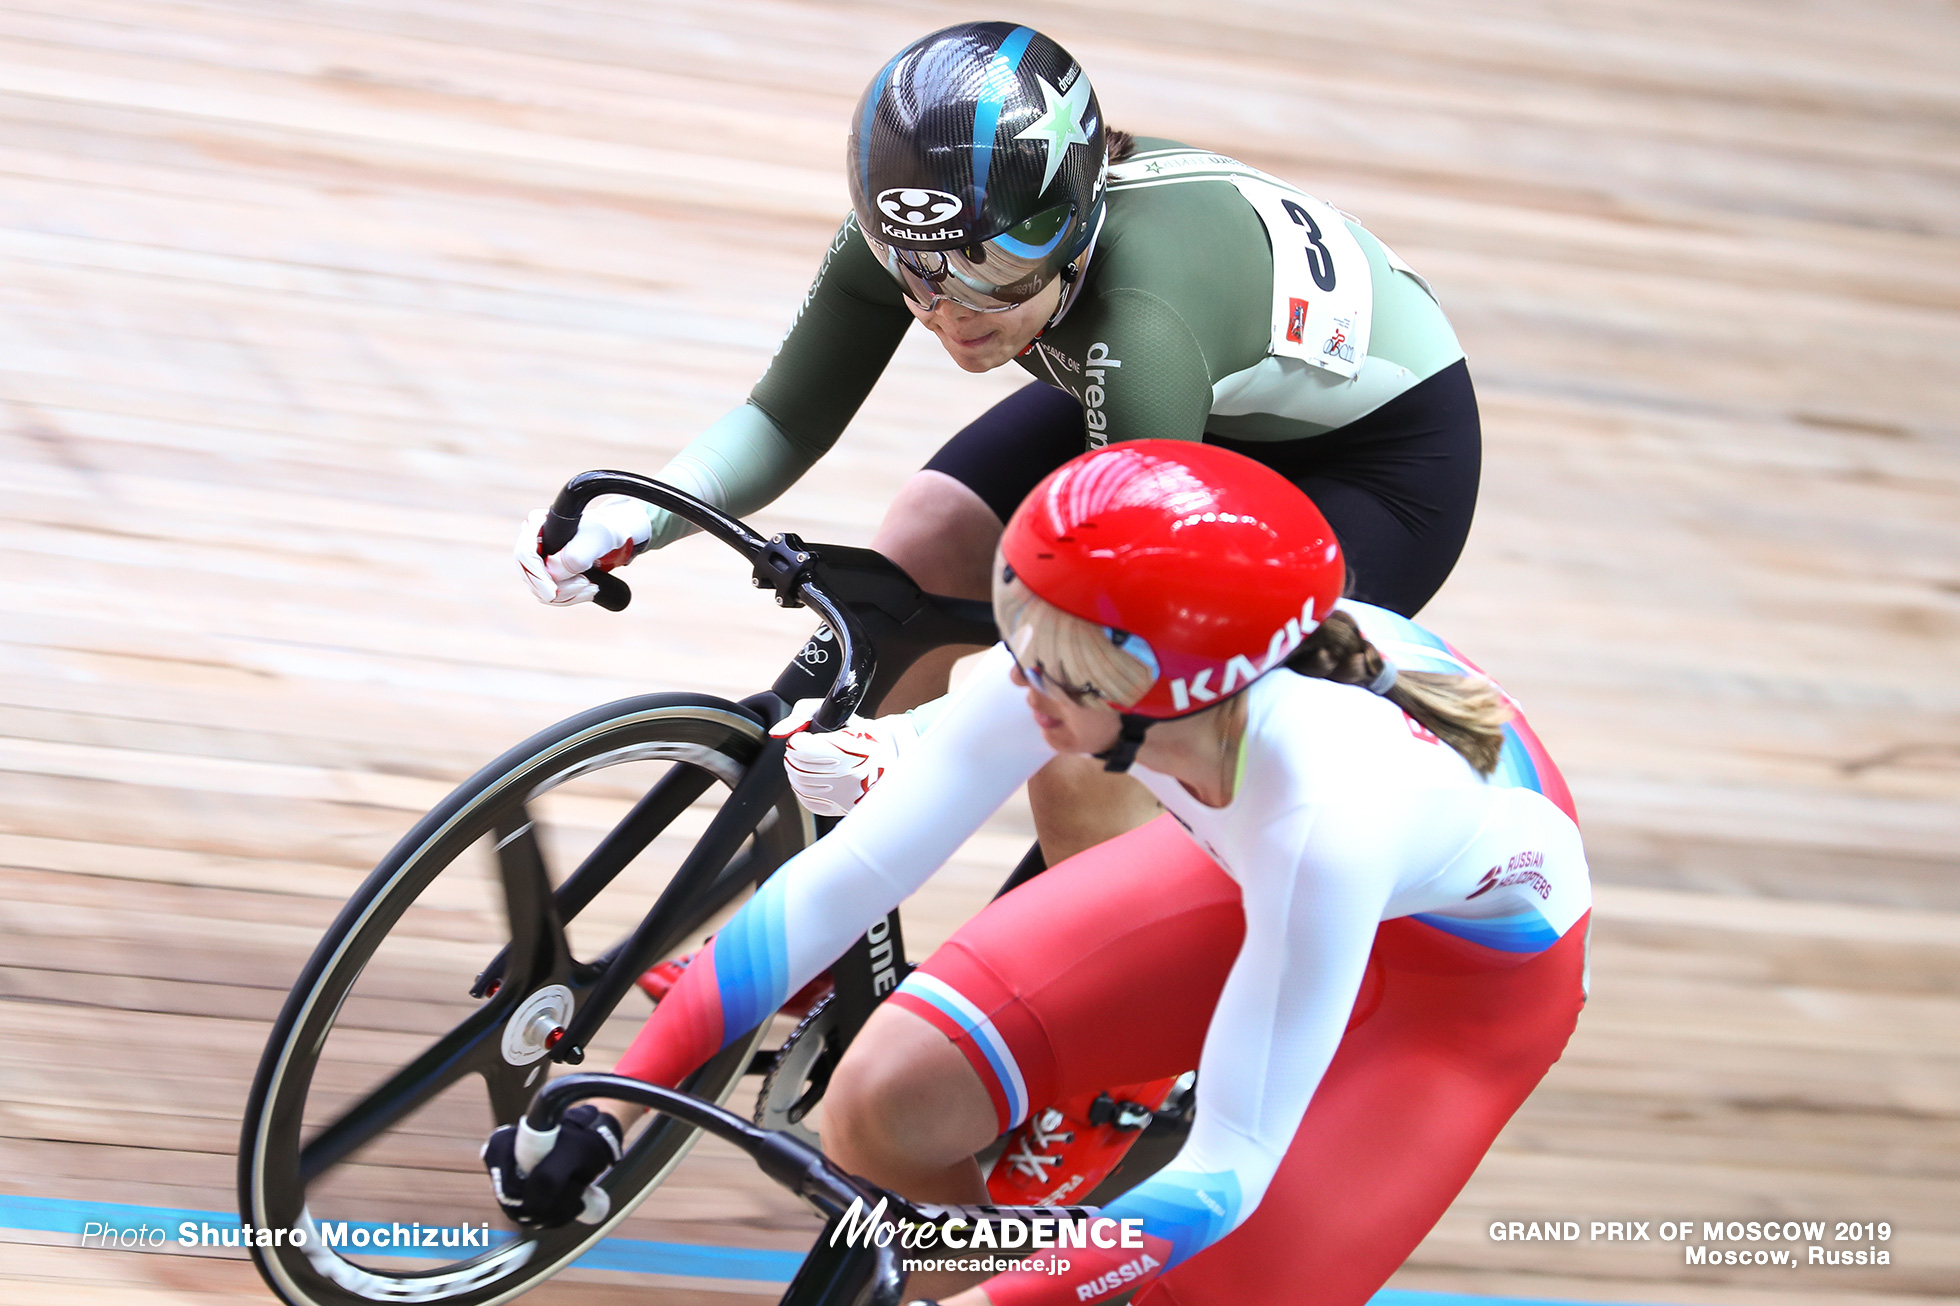 2nd Round / Women's Sprint / GRAND PRIX OF MOSCOW 2019